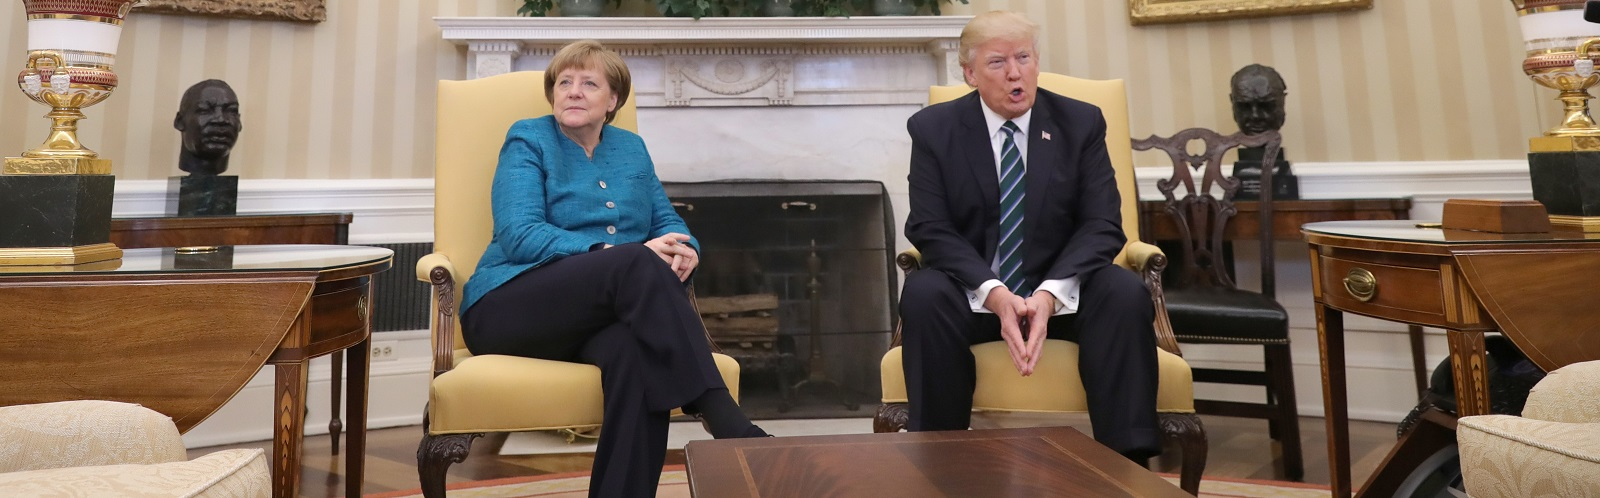 German Chancellor Angela Merkel and US-President Donald Trump at the White House on Friday (Photo: Barcroft Media via Getty Images)